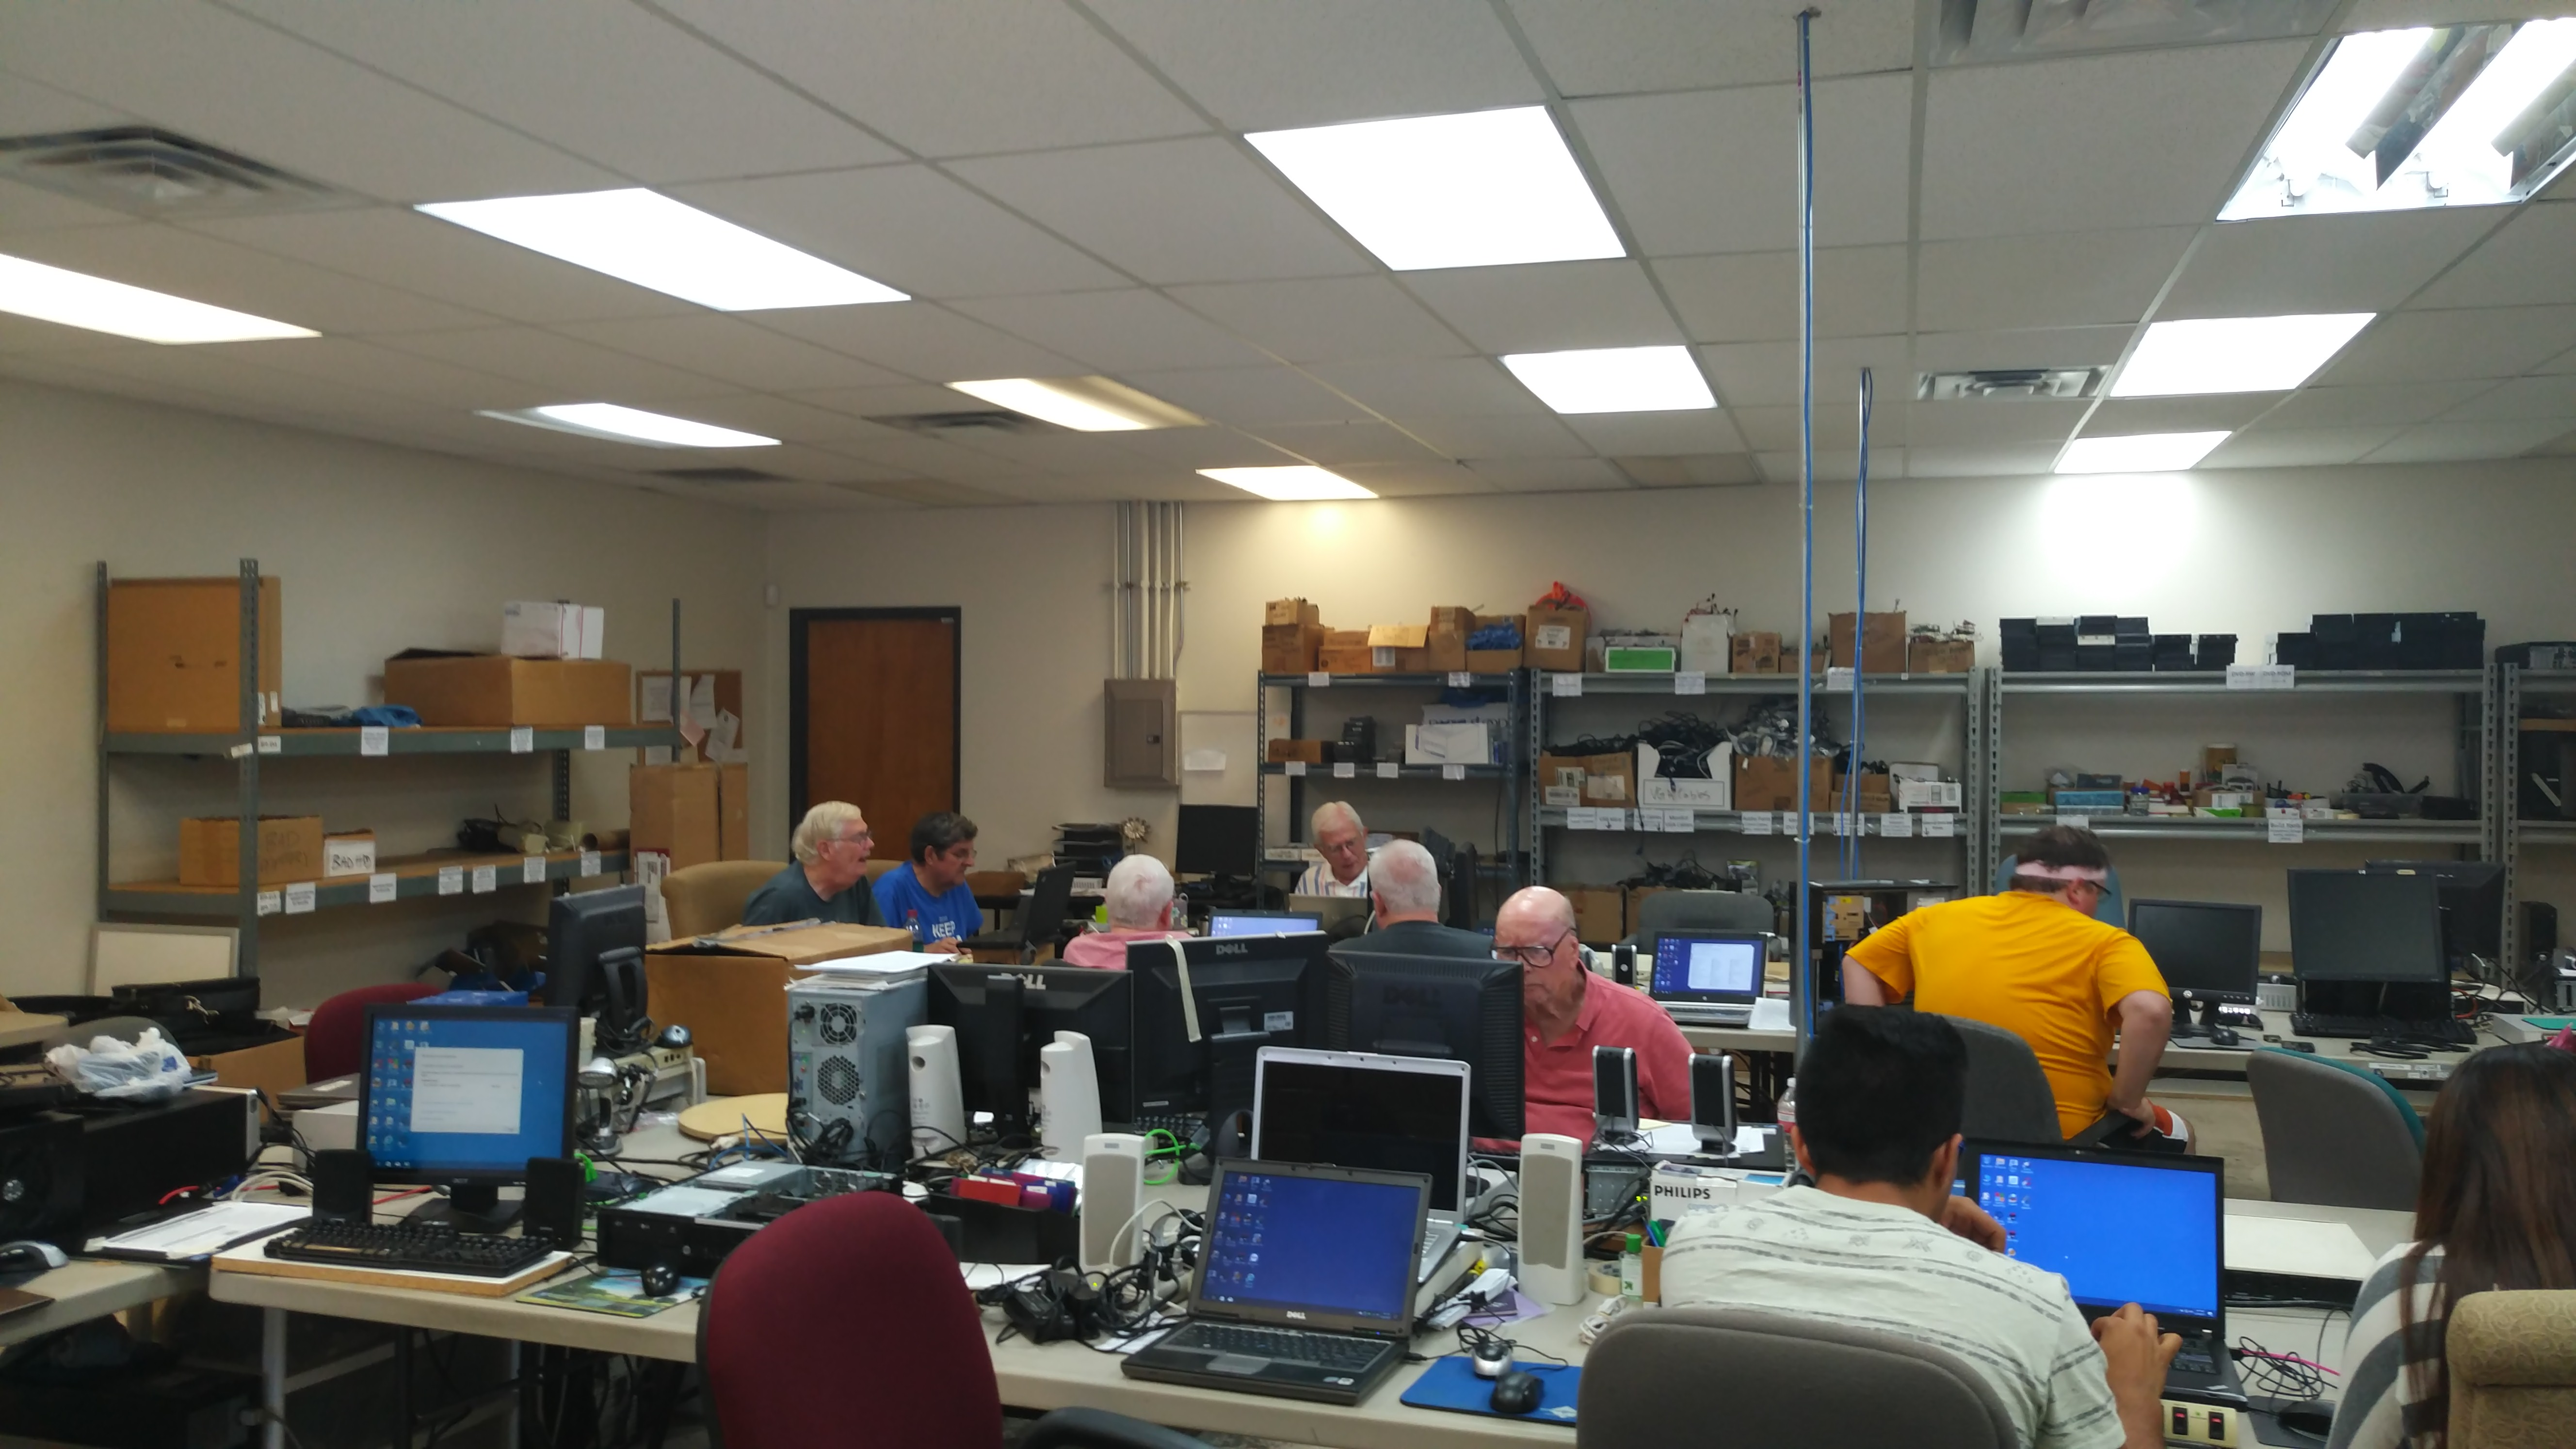 A normal day at the Center. We work hard to get computers out for our Clients, in great working condition. Normally we push 150+ each month!